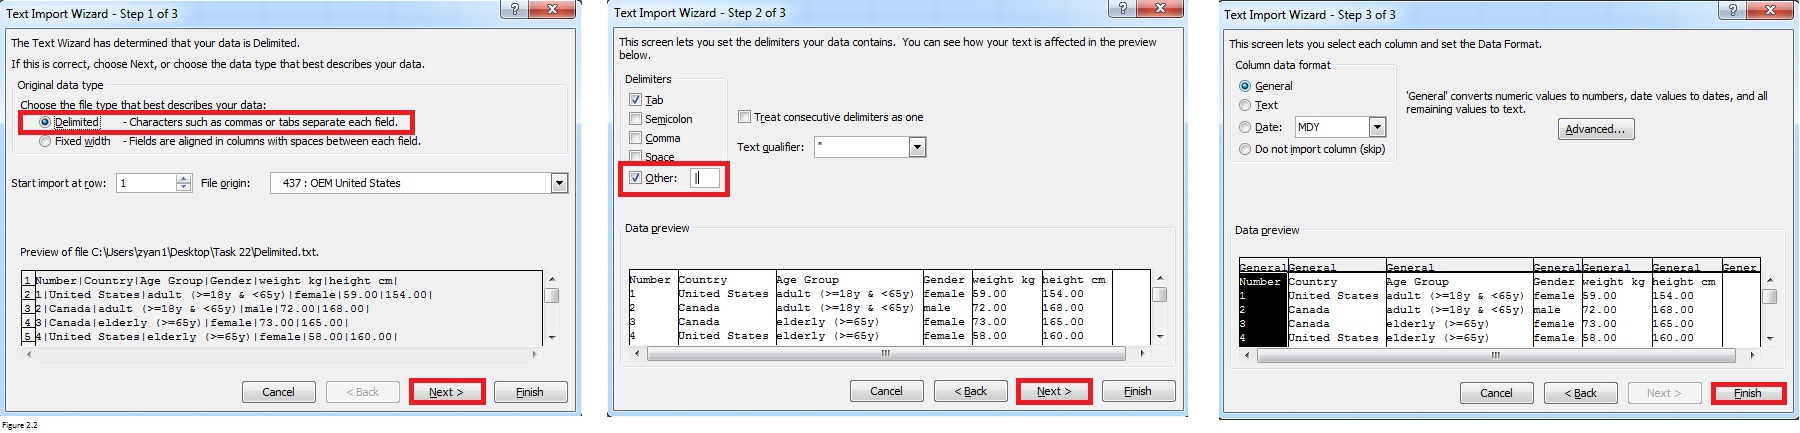 Import data from word to excel figure 2.2